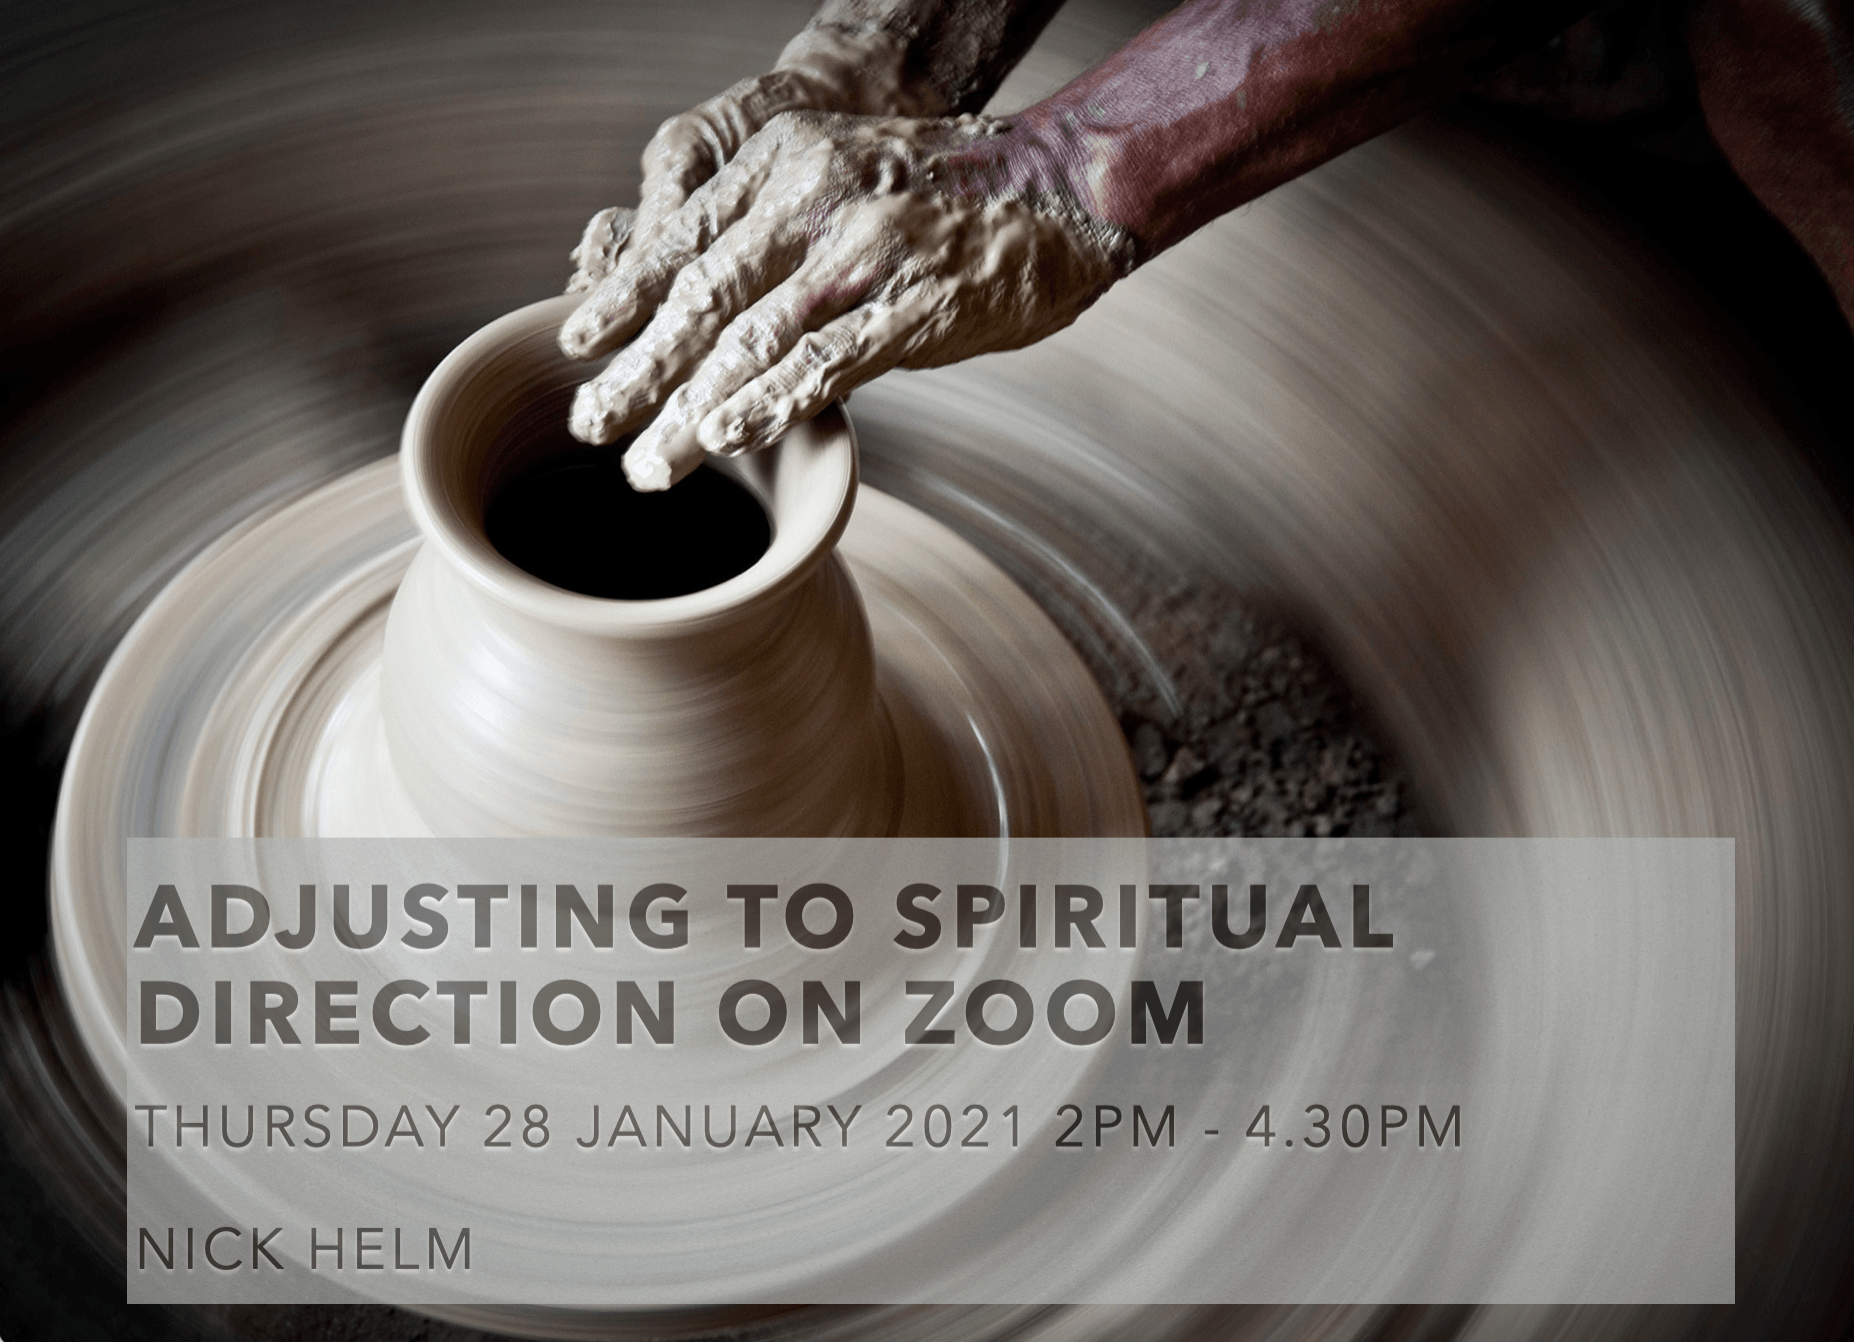 Adjusting To Spiritual Direction on Zoom